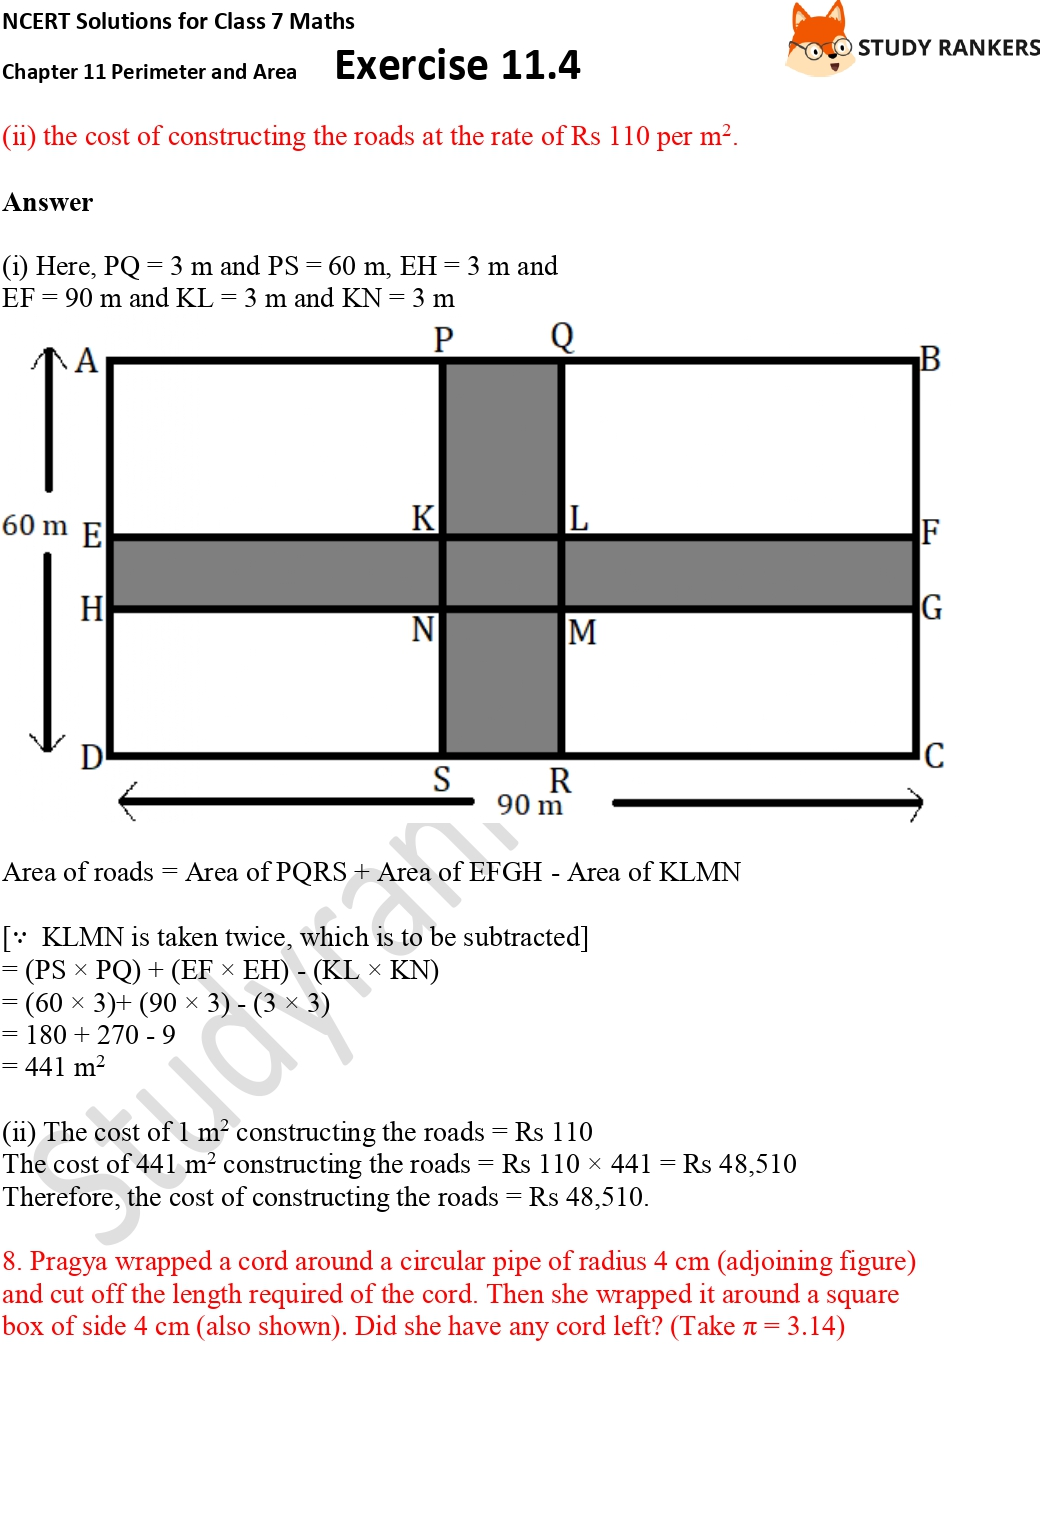 NCERT Solutions for Class 7 Maths Ch 11 Perimeter and Area Exercise 11.4 Part 5